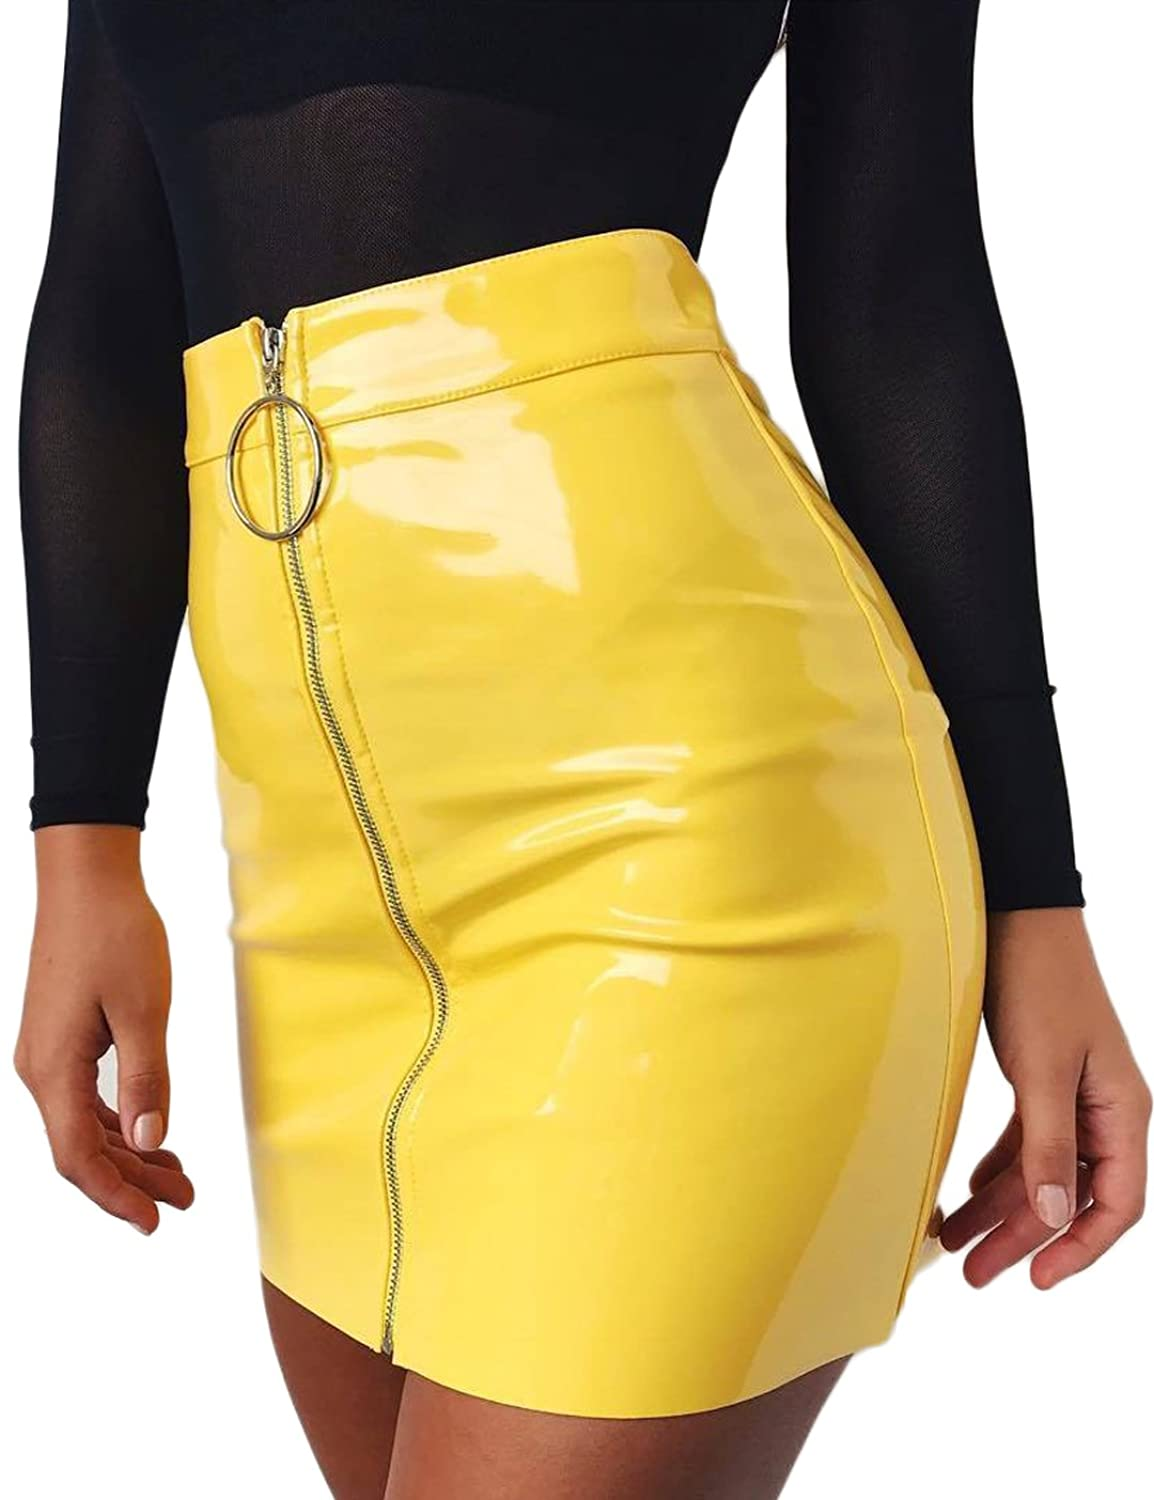 Lichene Women's Sexy High Waist Liquid Metallic Pu Faux Leather Bodycon Front Zipper Mini Skirts by Lichene